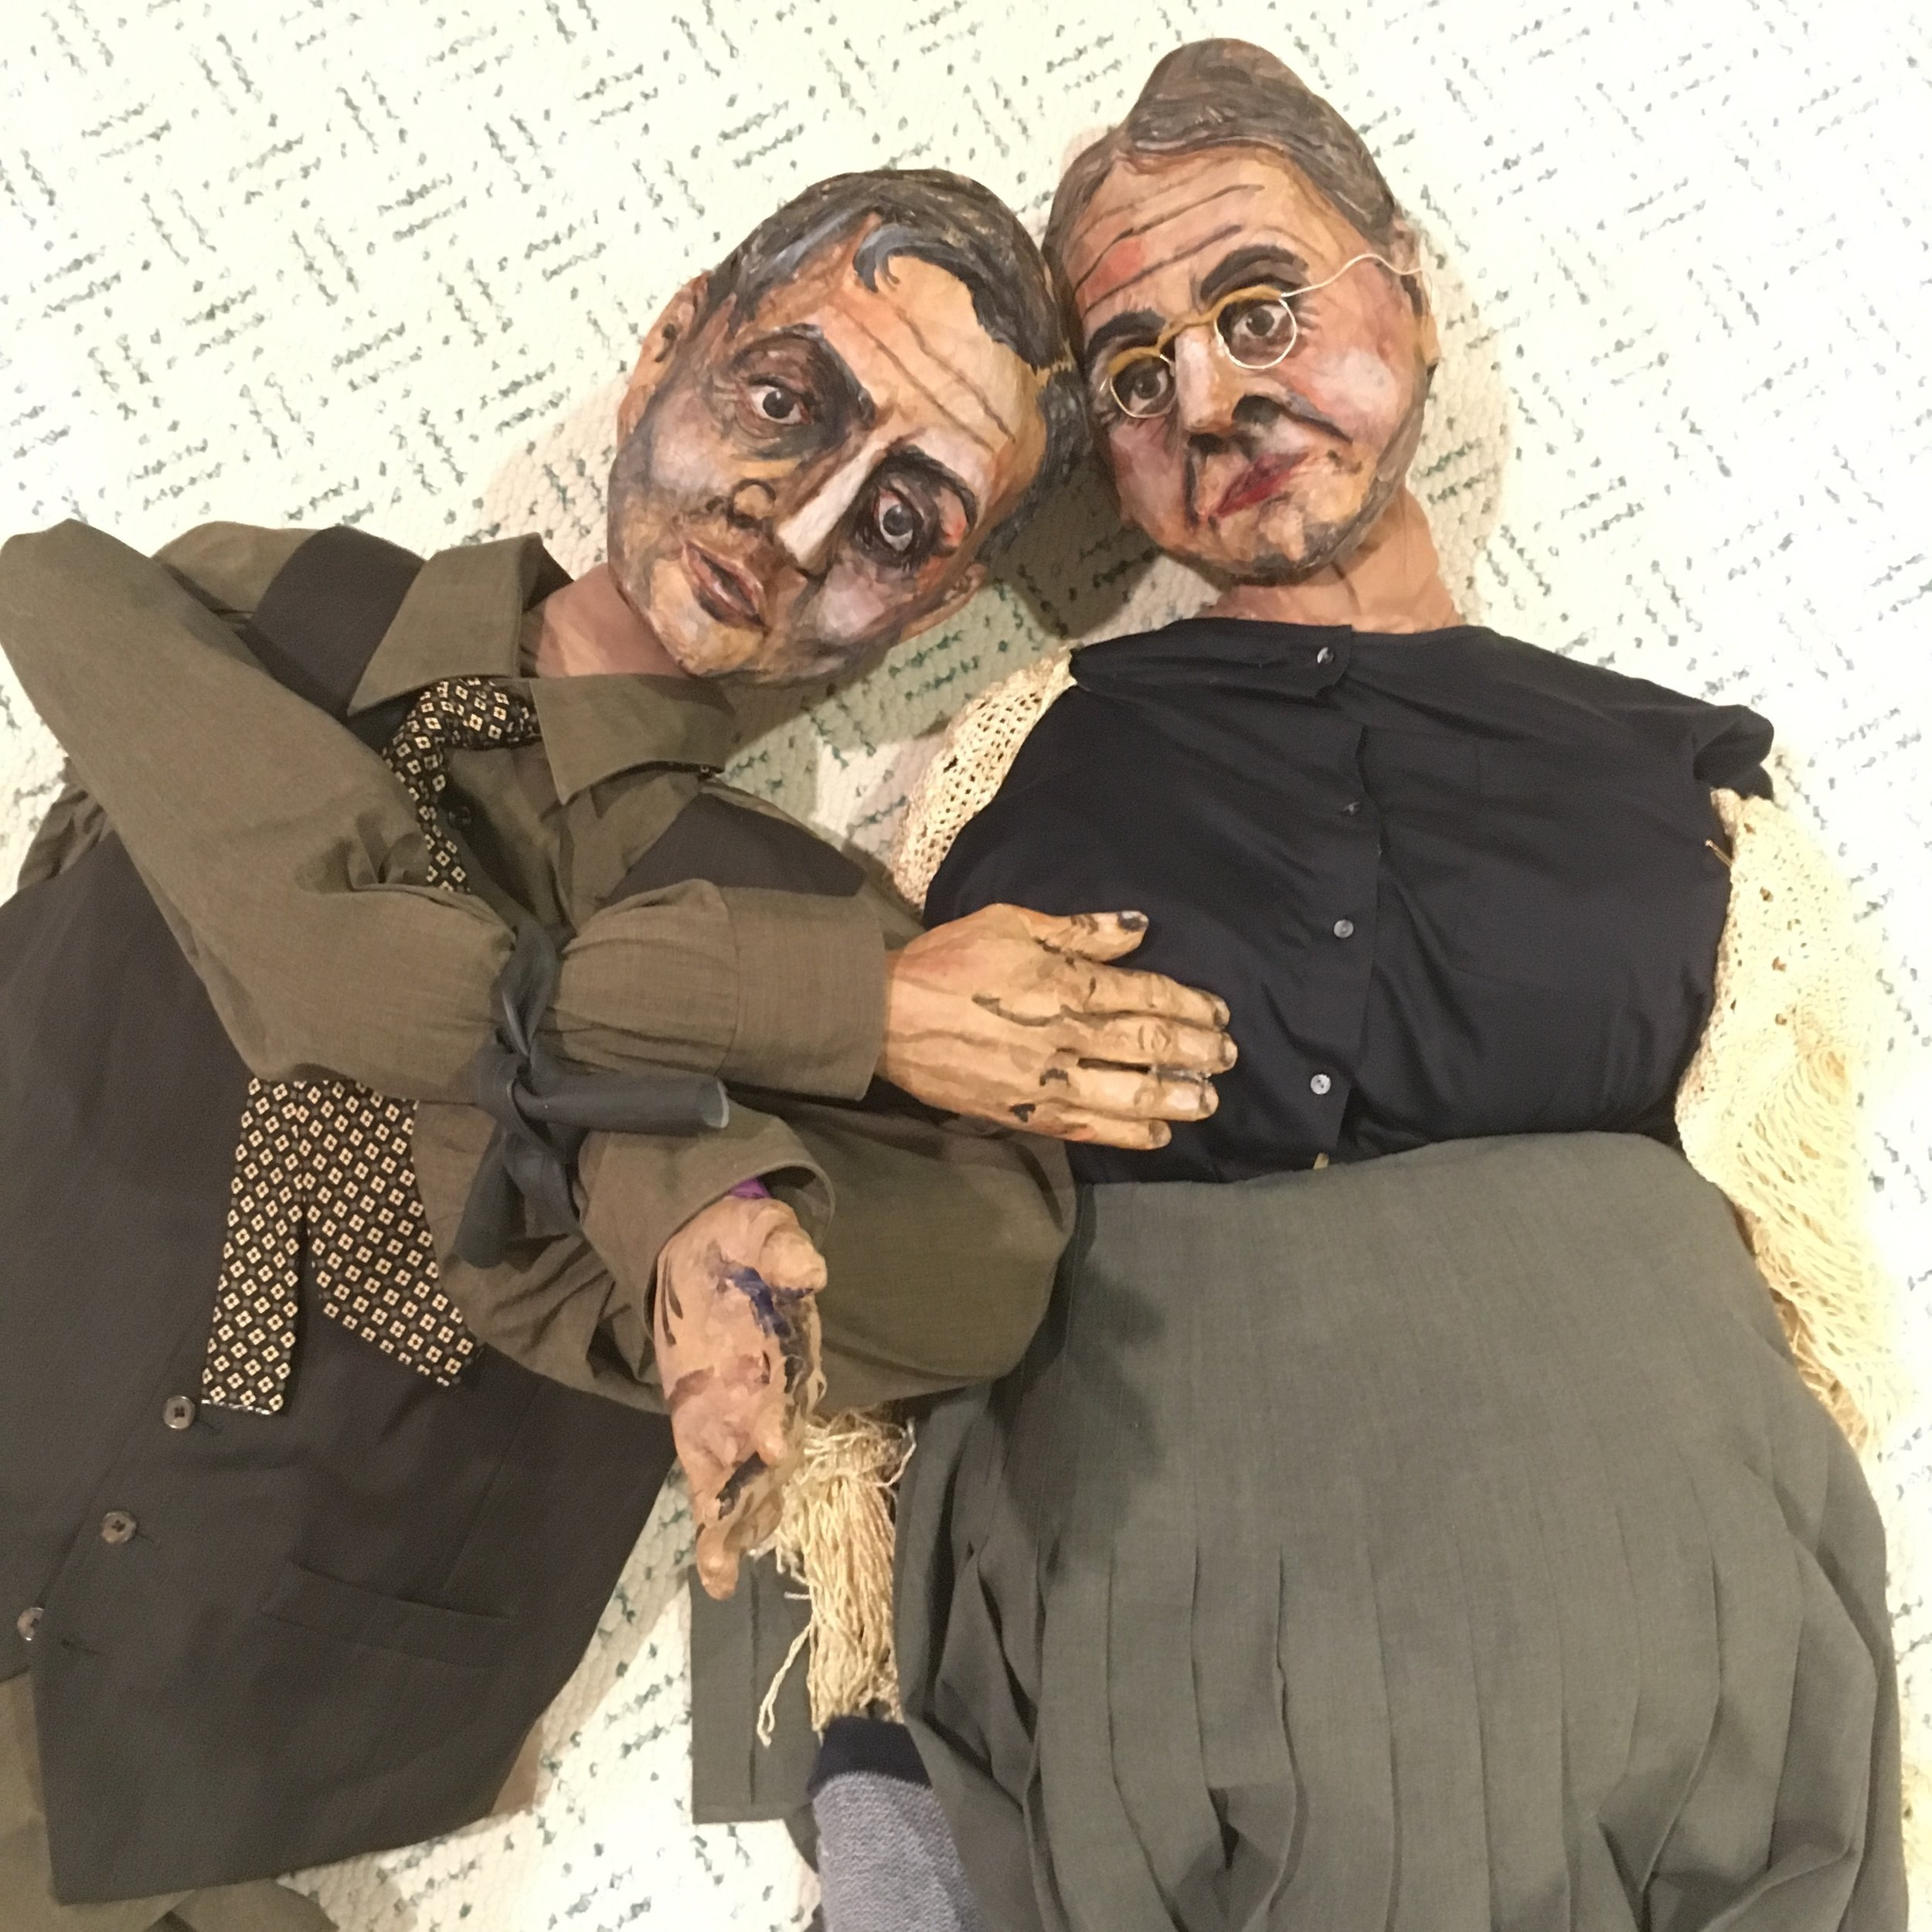 Full-size Bunraku-inspired puppets I built for a theatre workshop